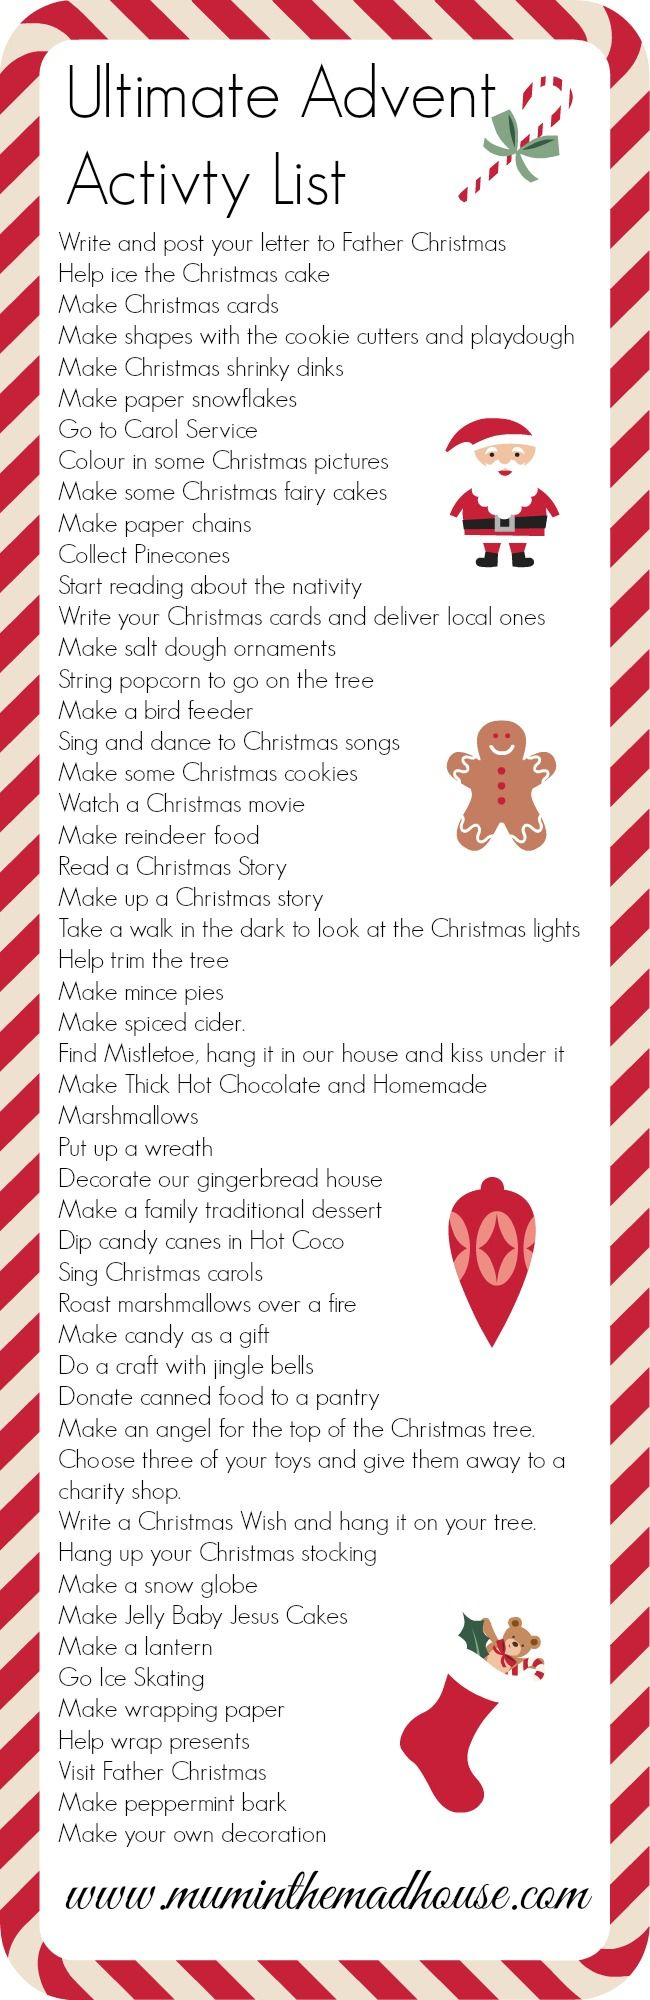 50 simple and easy activities for advent and advent calendars perfect for the lead up to Christmas from Mum in the Mad House